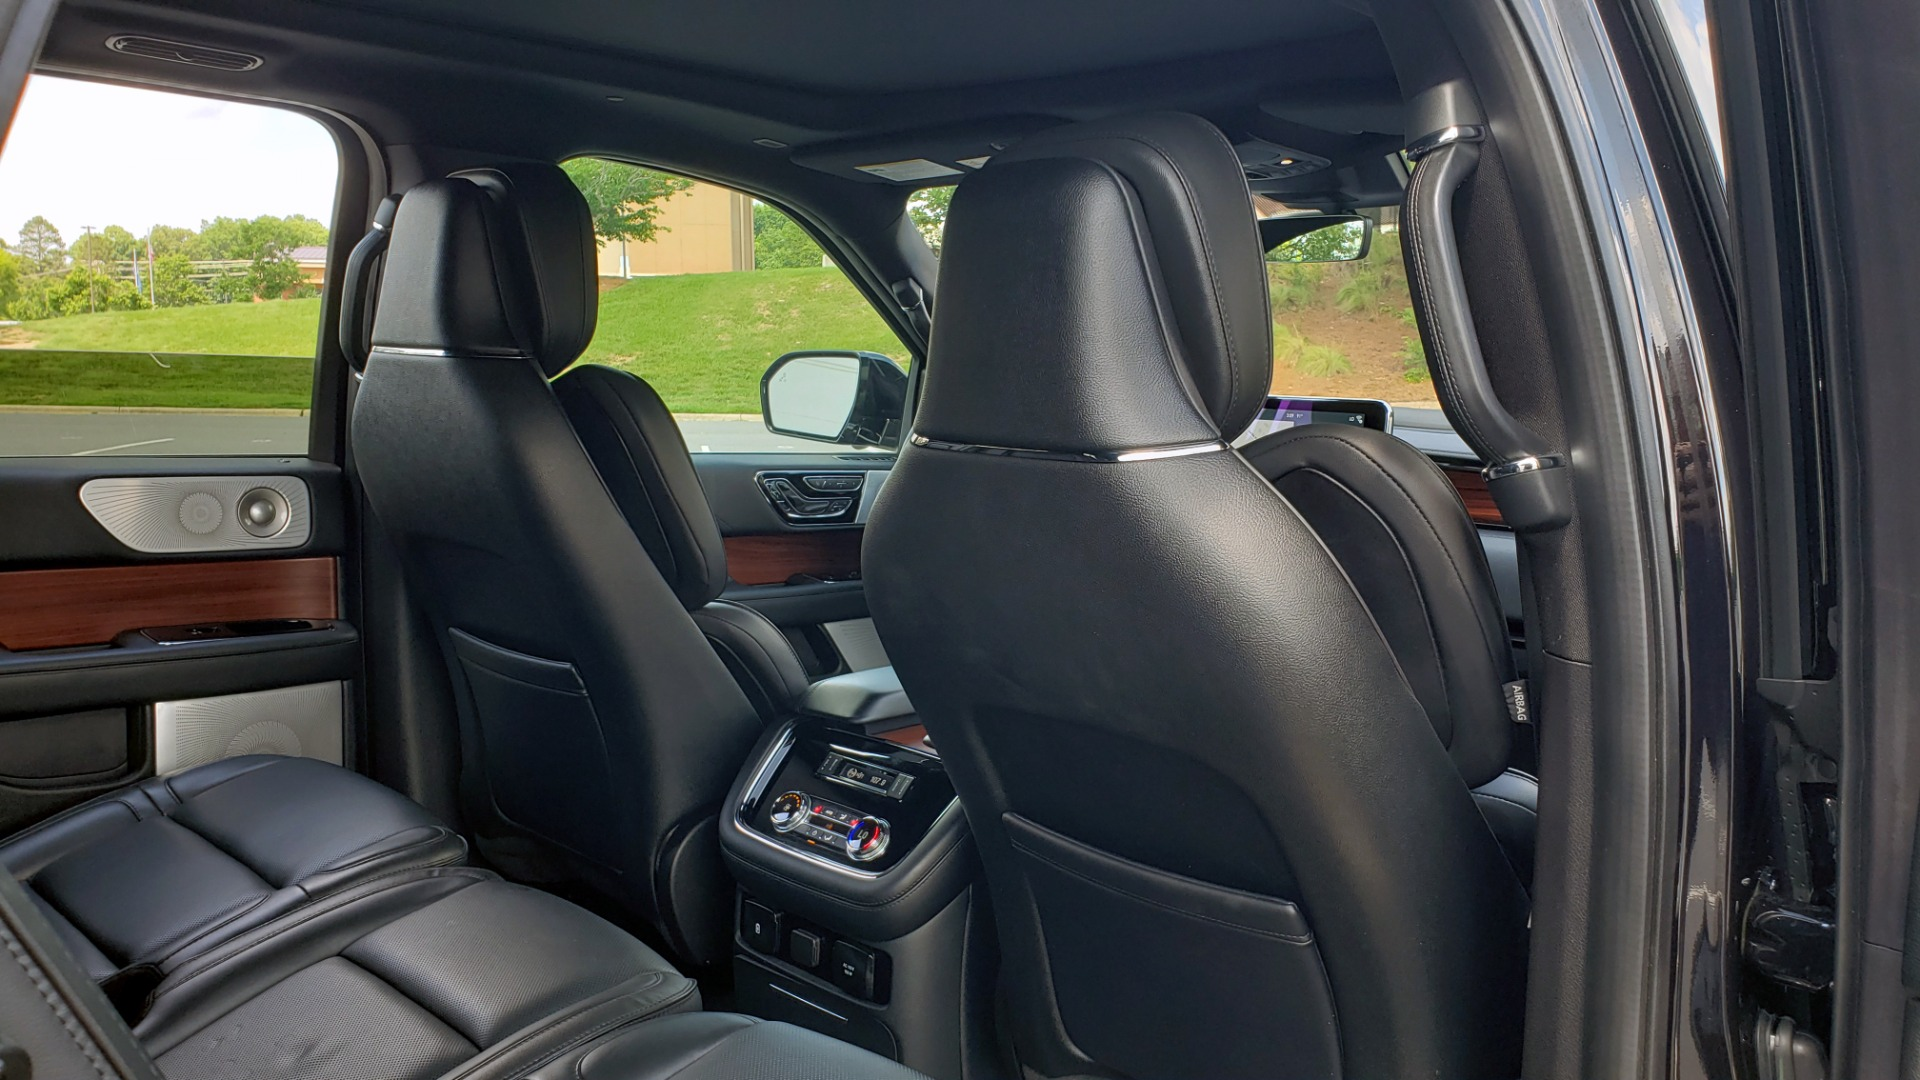 Used 2019 Lincoln NAVIGATOR RESERVE 4X4 / NAV / PANO-ROOF / REVEL ULTIMA AUDIO / 3-ROW / REARVIEW for sale $74,795 at Formula Imports in Charlotte NC 28227 84